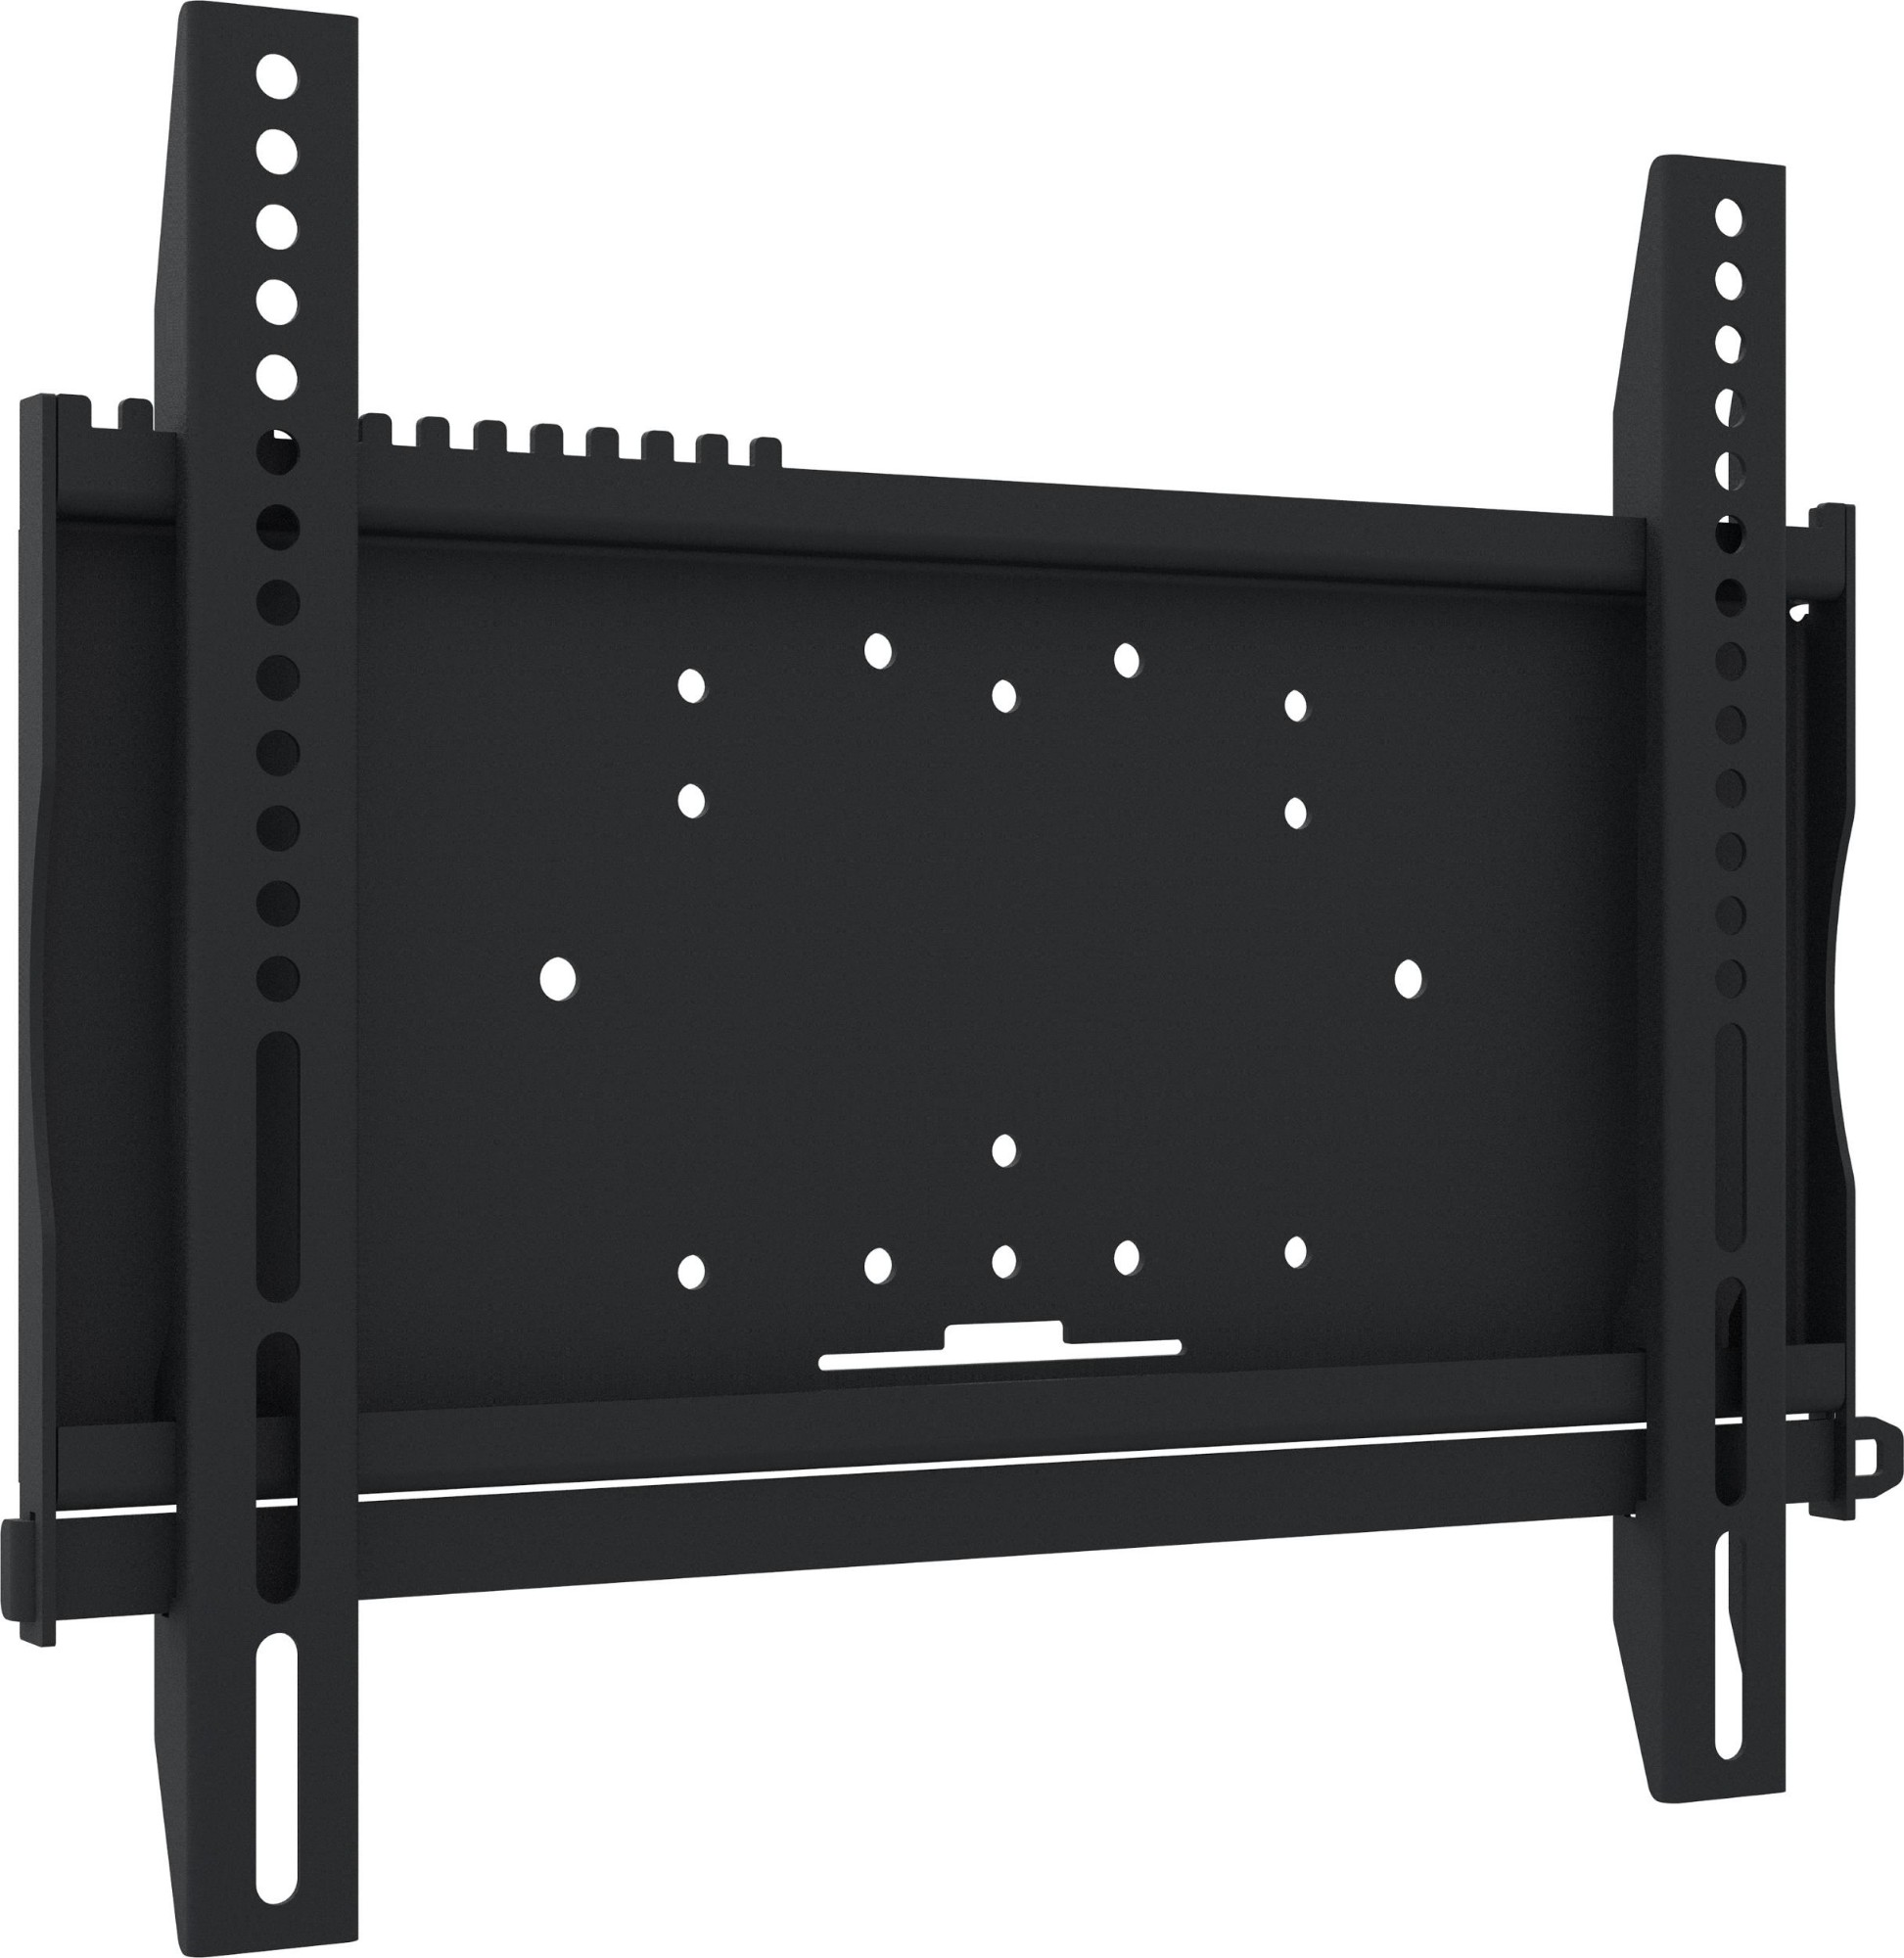 iiyama MD 052B1000 Black flat panel wall mount